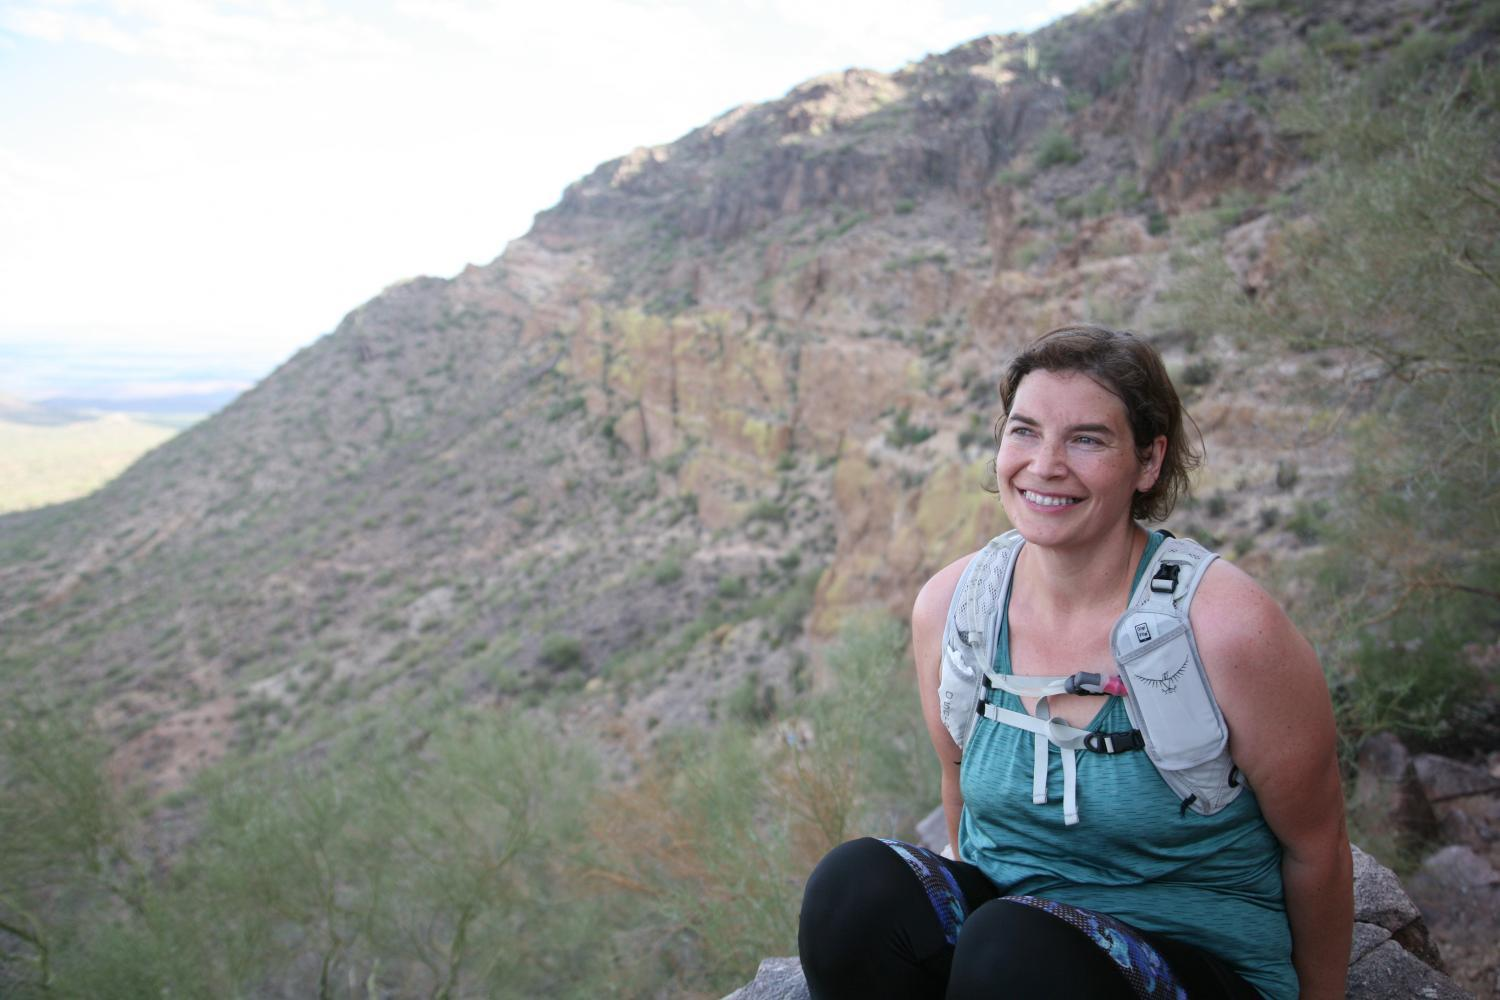 megan asad smiling on a trail